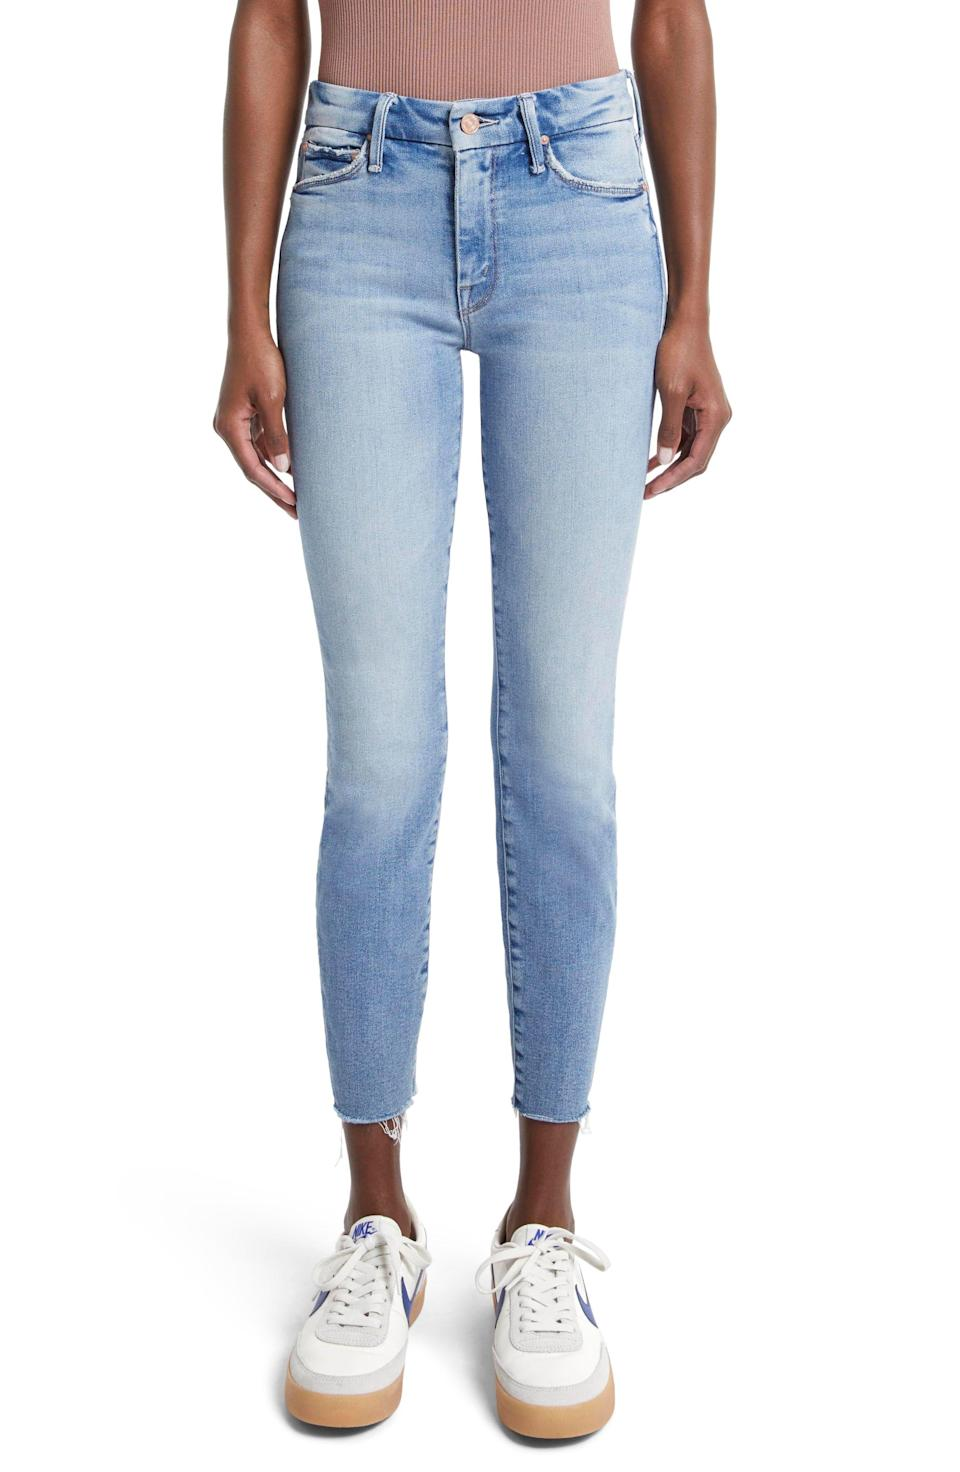 """<p><strong>MOTHER</strong></p><p>nordstrom.com</p><p><strong>$238.00</strong></p><p><a href=""""https://go.redirectingat.com?id=74968X1596630&url=https%3A%2F%2Fwww.nordstrom.com%2Fs%2Fmother-the-looker-fray-hem-ankle-skinny-jeans%2F5352619&sref=https%3A%2F%2Fwww.marieclaire.com%2Ffashion%2Fg35090742%2Fnordstrom-half-yearly-sale-2020%2F"""" rel=""""nofollow noopener"""" target=""""_blank"""" data-ylk=""""slk:Shop Now"""" class=""""link rapid-noclick-resp"""">Shop Now</a></p>"""